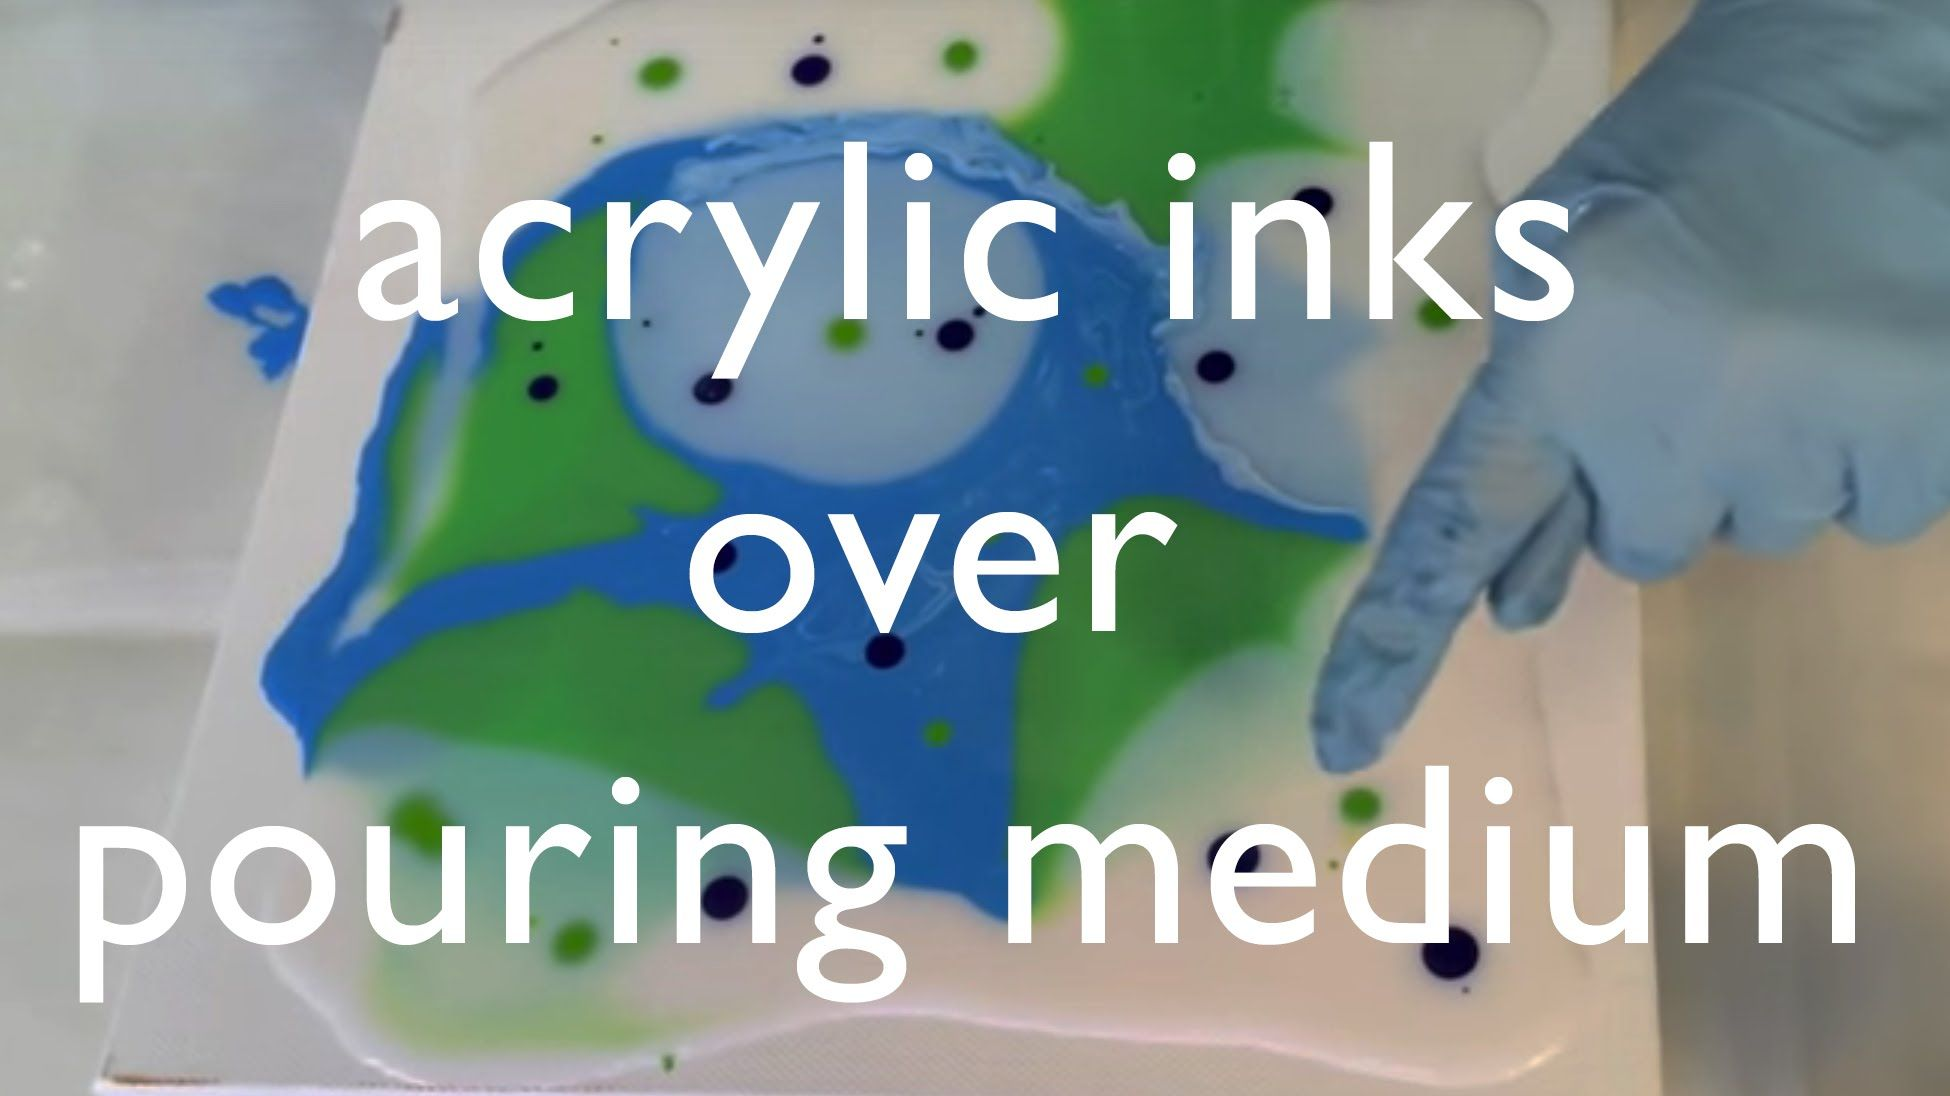 Pittura Acrilica Video Acrylic Inks With Pouring Medium Video Tutorial Excellent